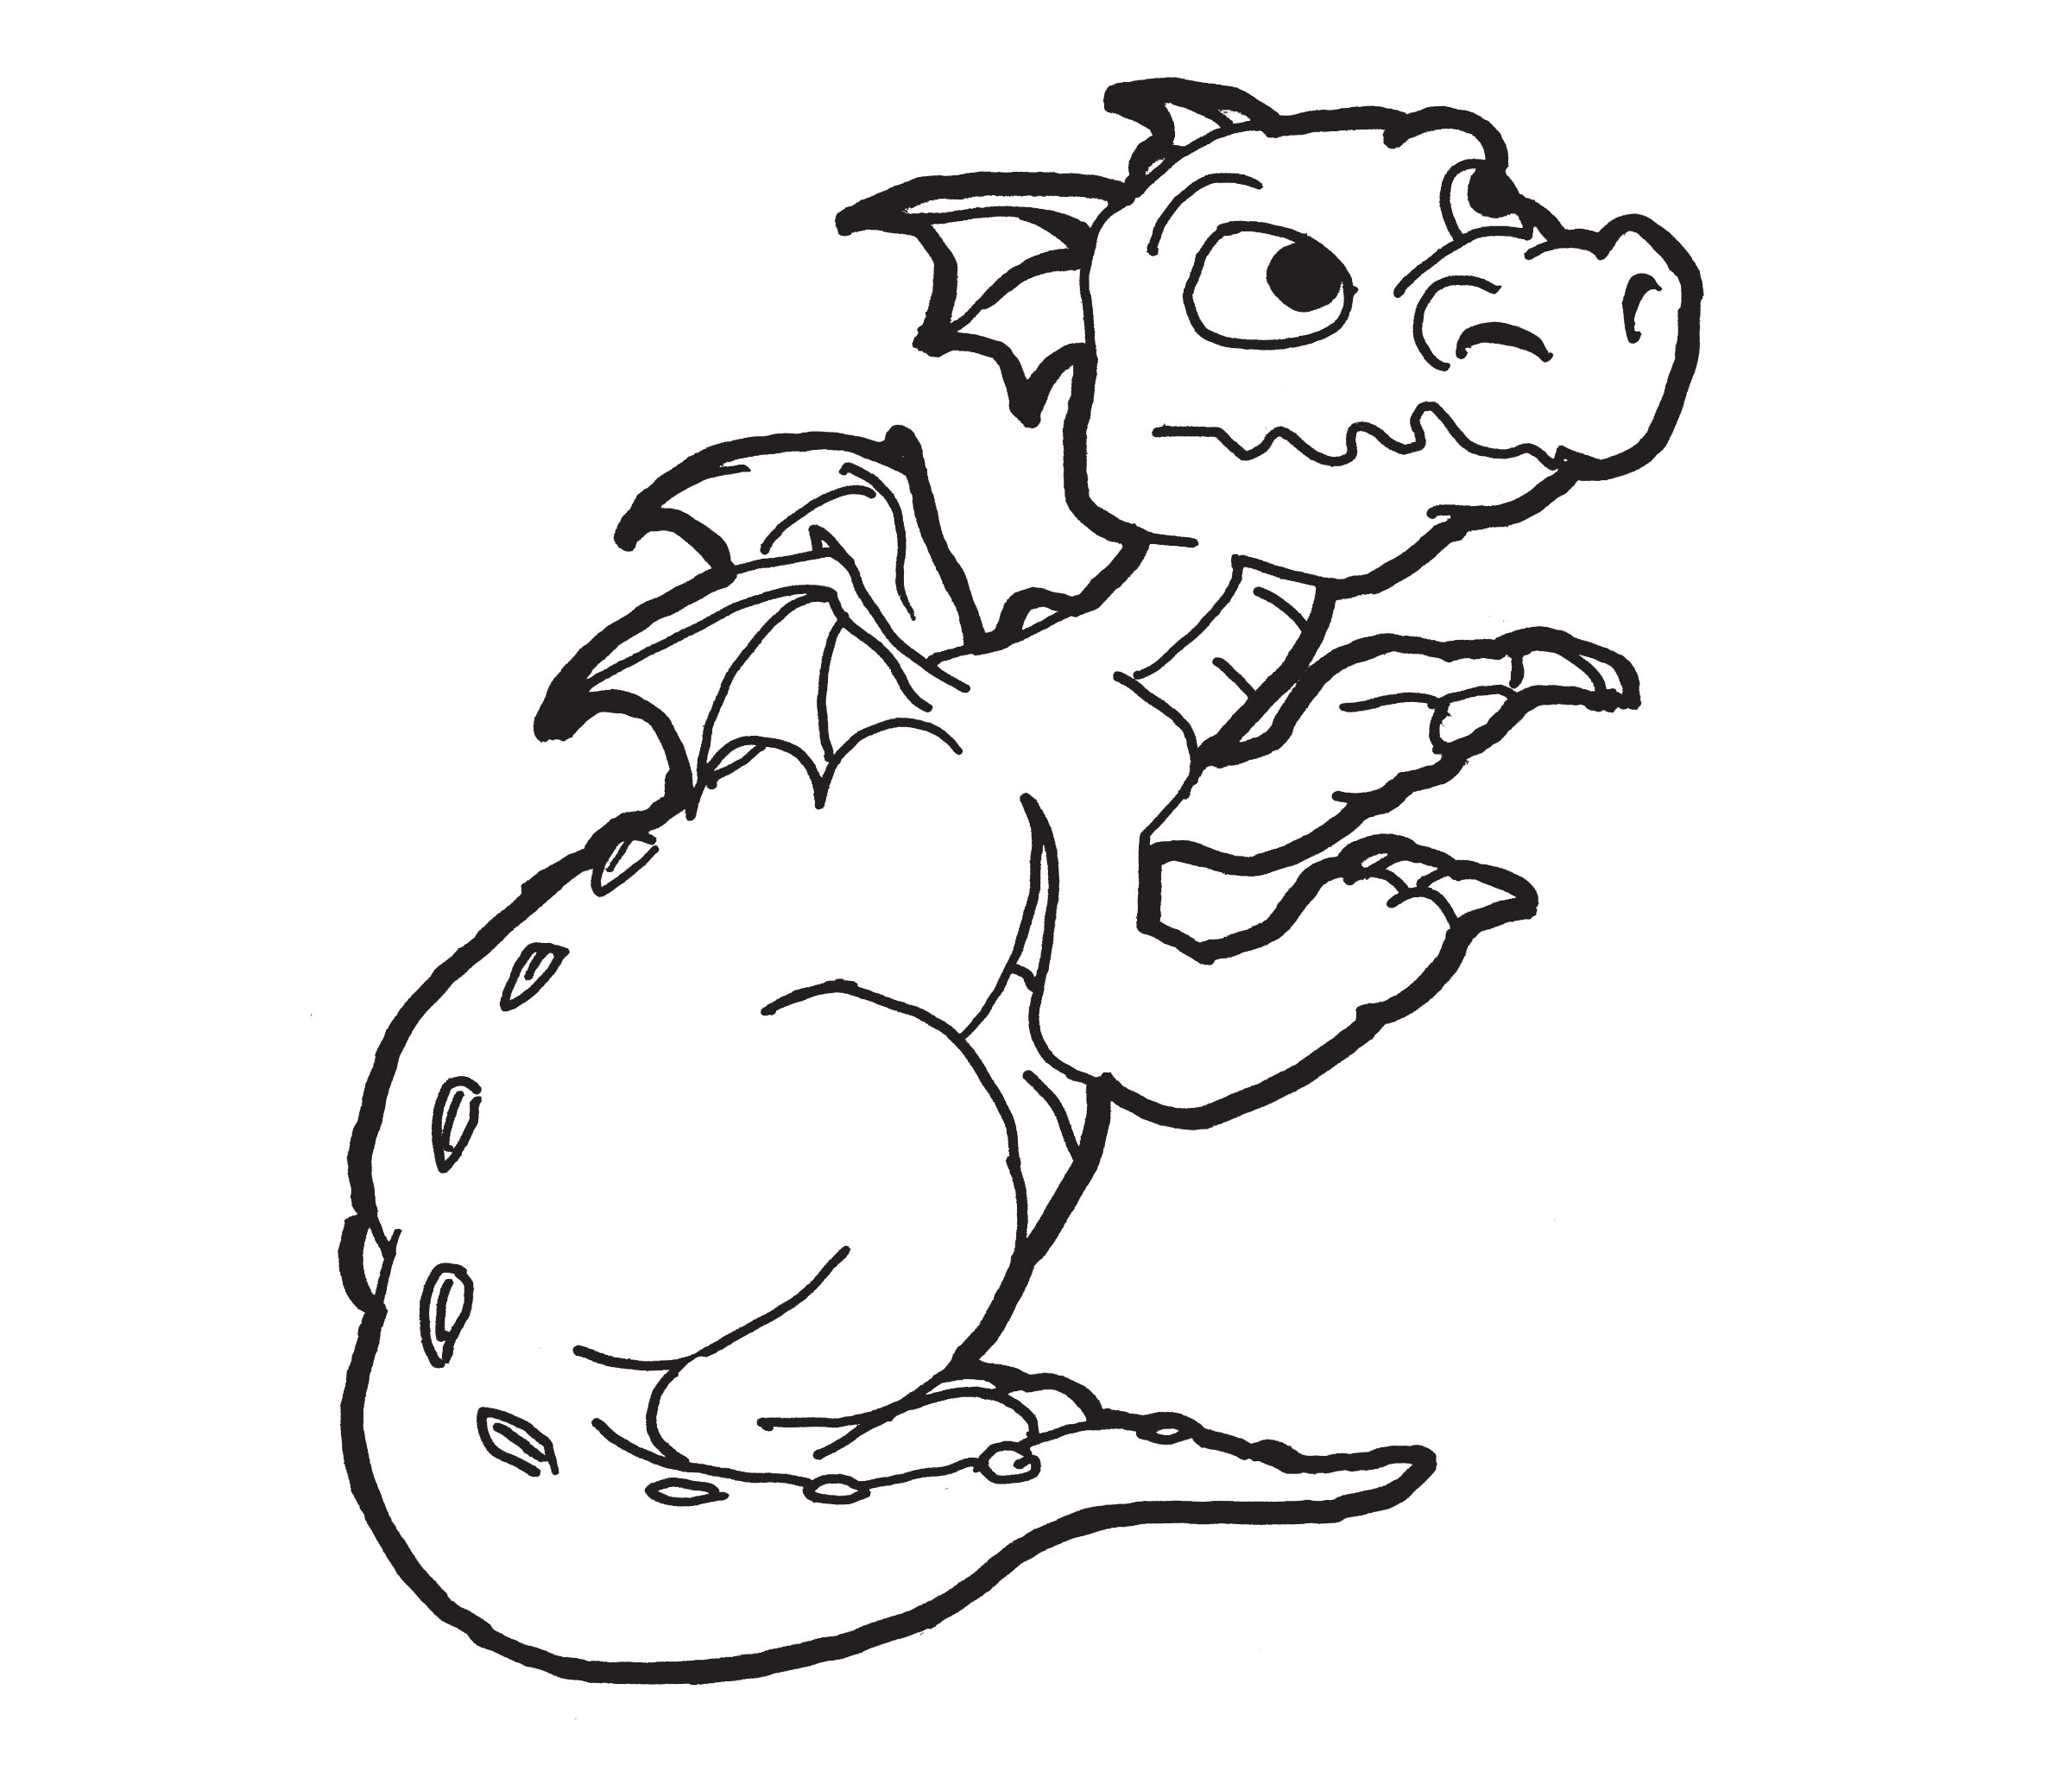 2400x2052 Dragon Head Coloring Page, European Dragon Head Coloring Page